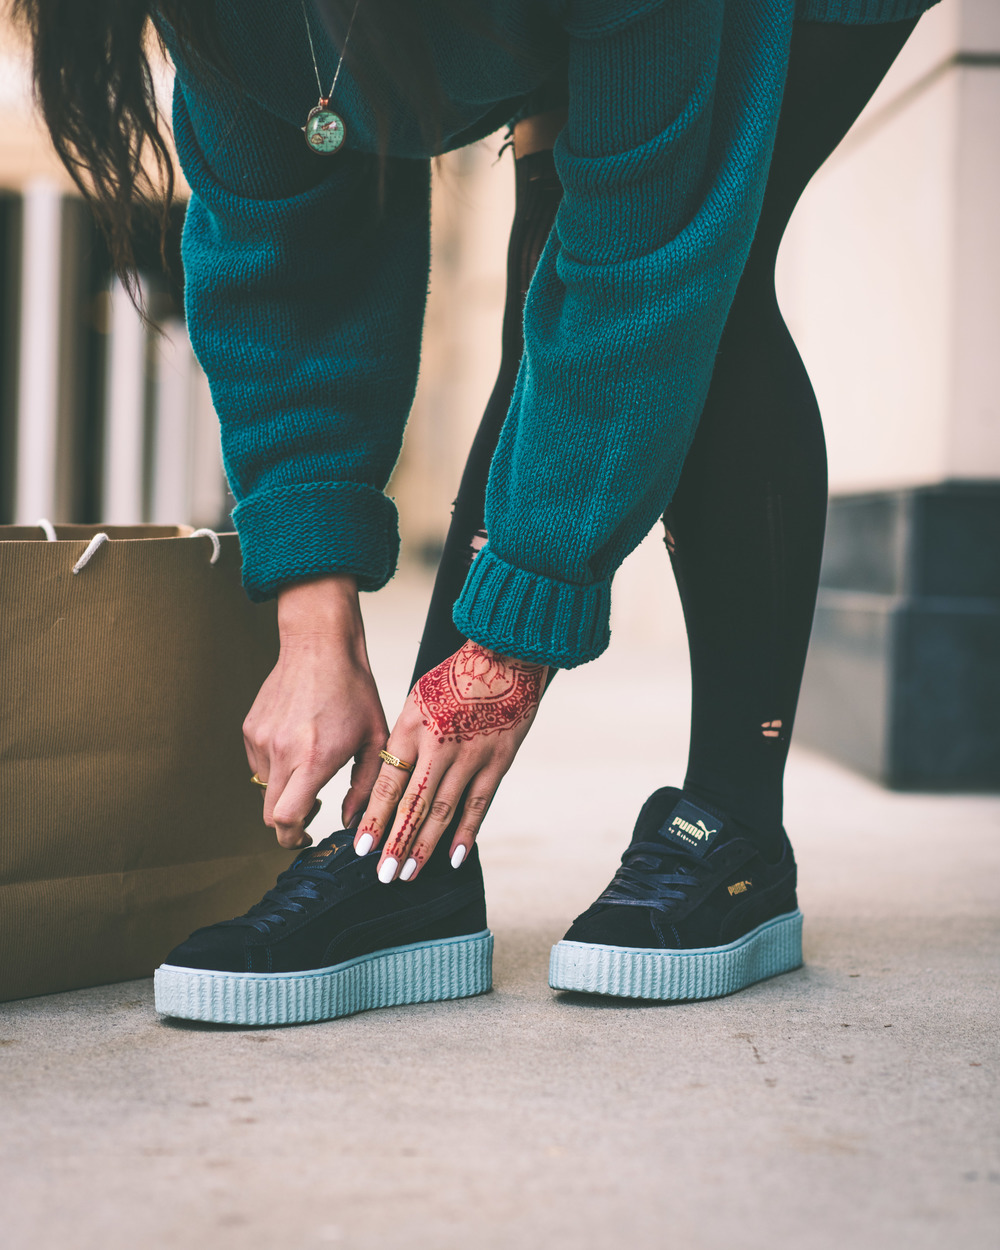 c2e541d4888 With or without being a part of  RihannaNavy you can still cop the new  color way of the CREEPERS. A peacoat blue suede material embodies the  entire ...